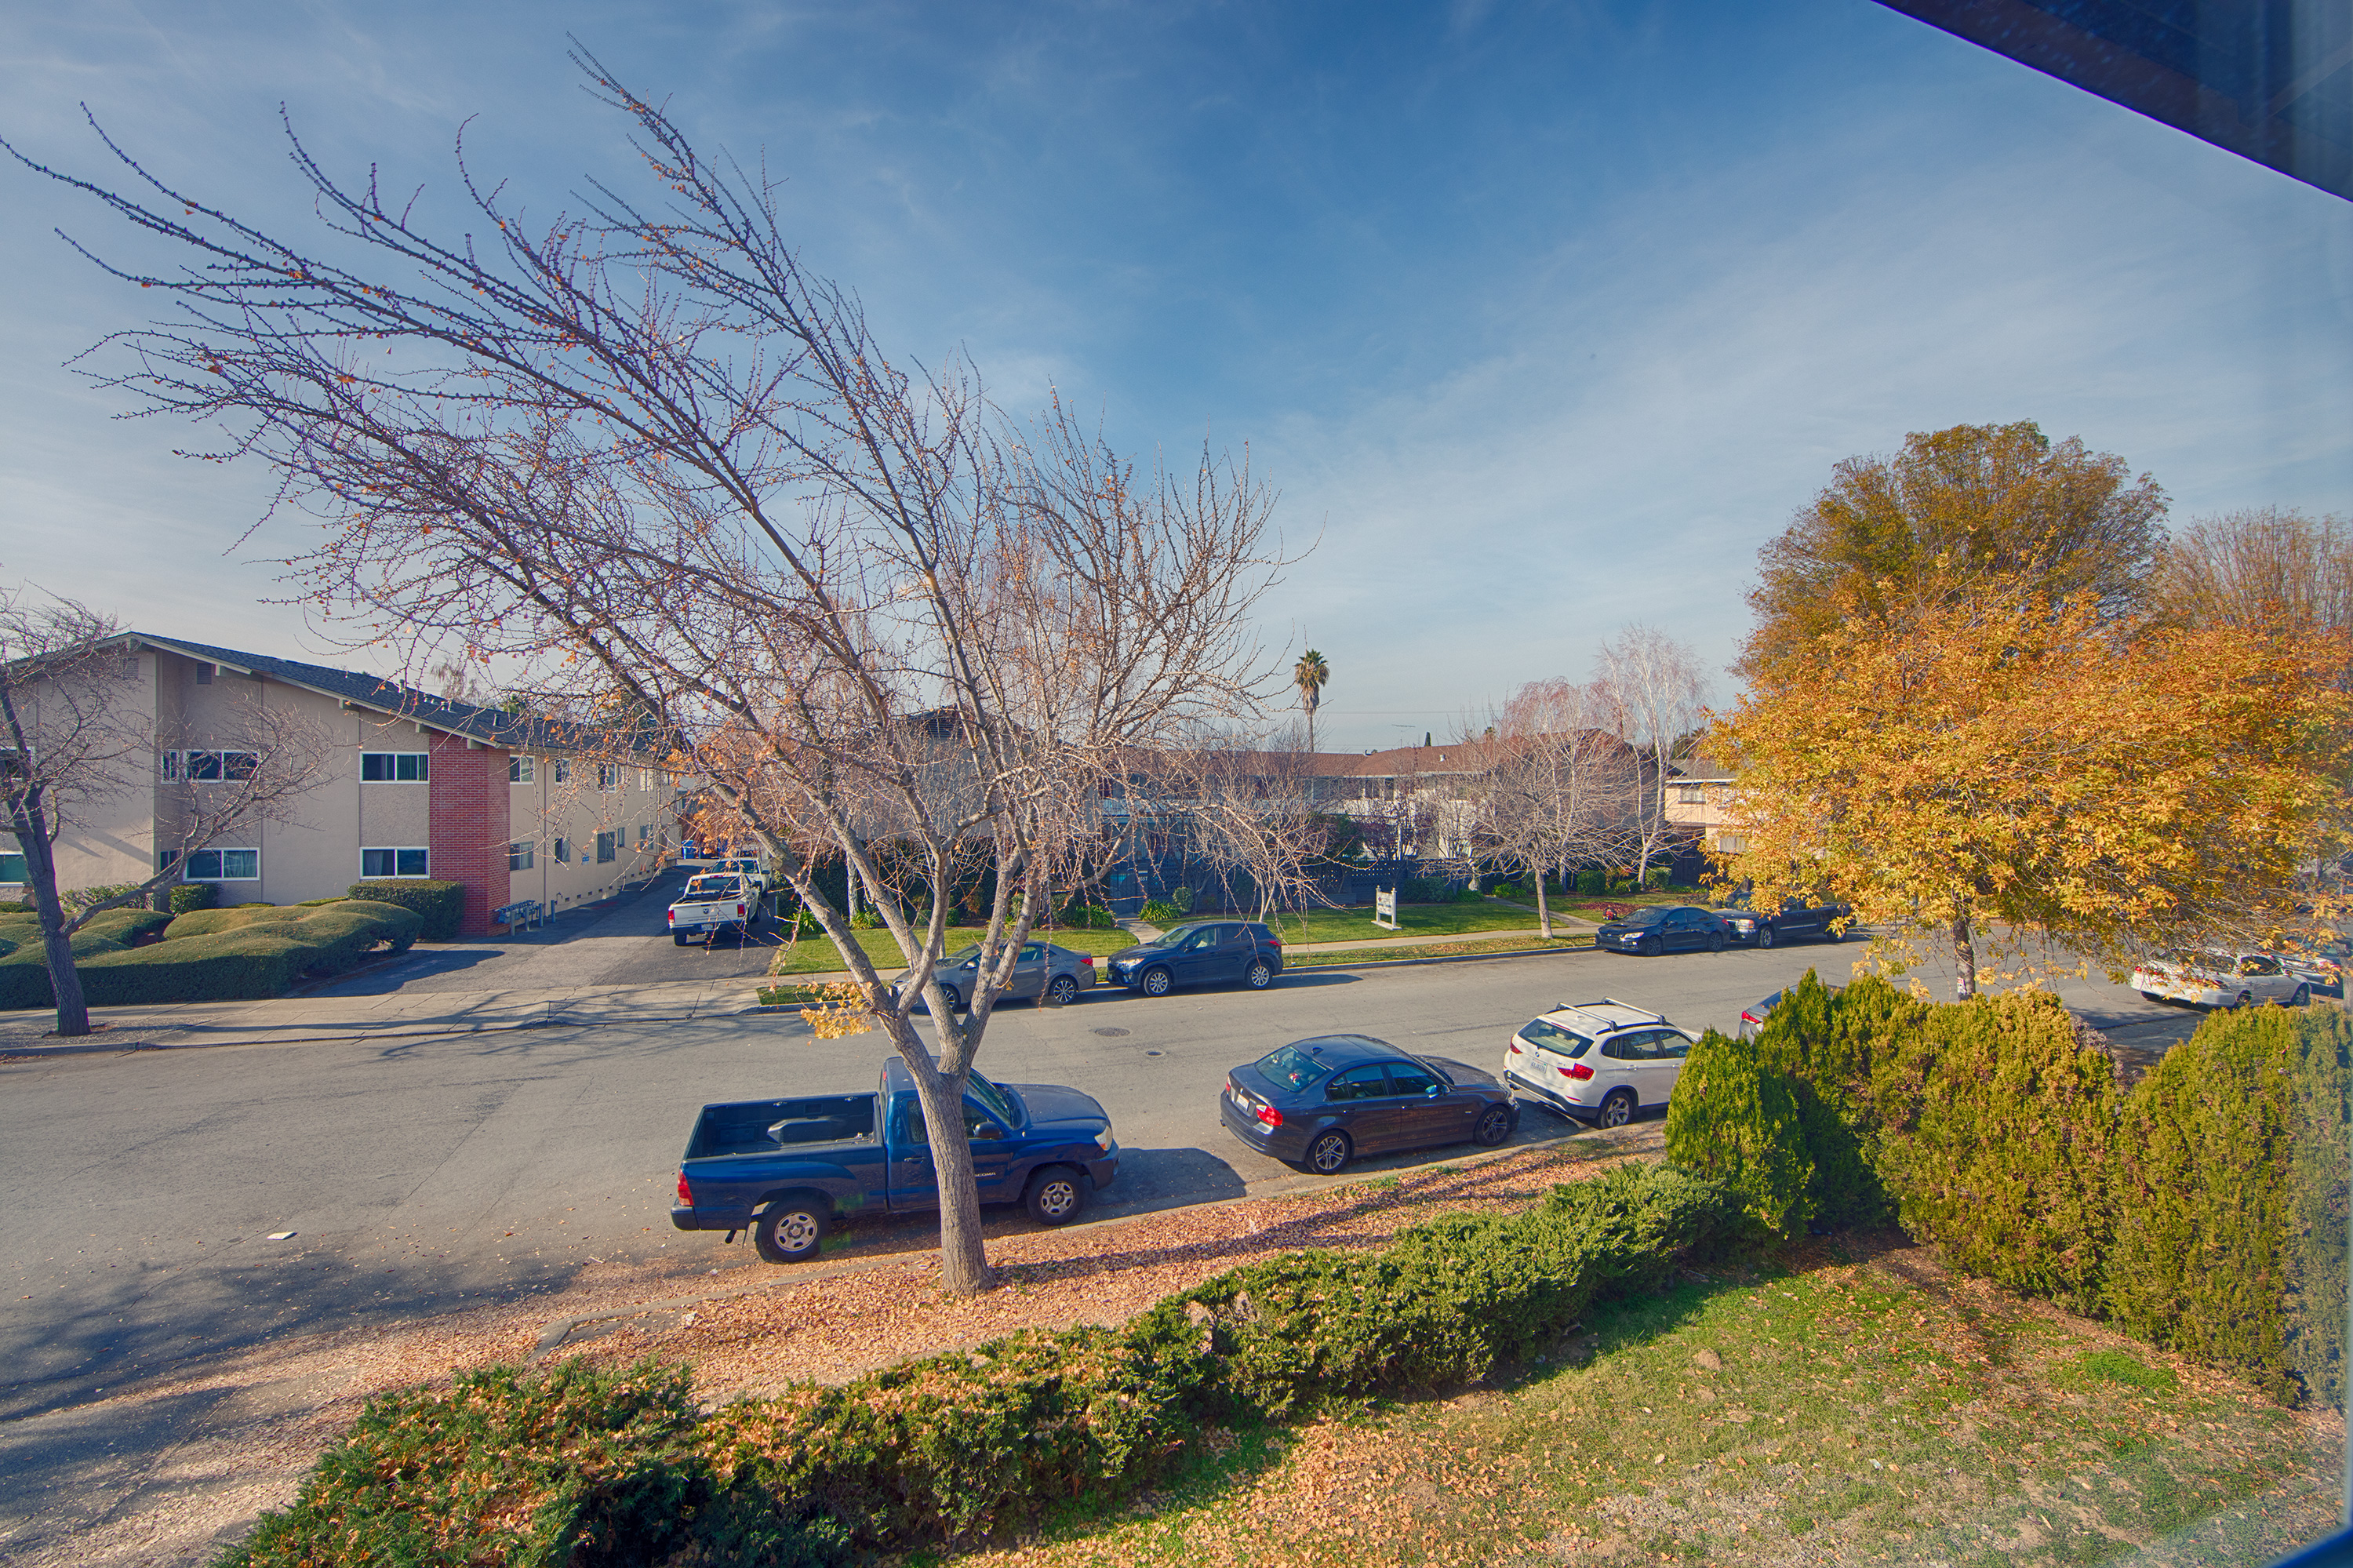 1662 Ontario Dr, Sunnyvale 94087 - Unit 3 Living Room View (A)